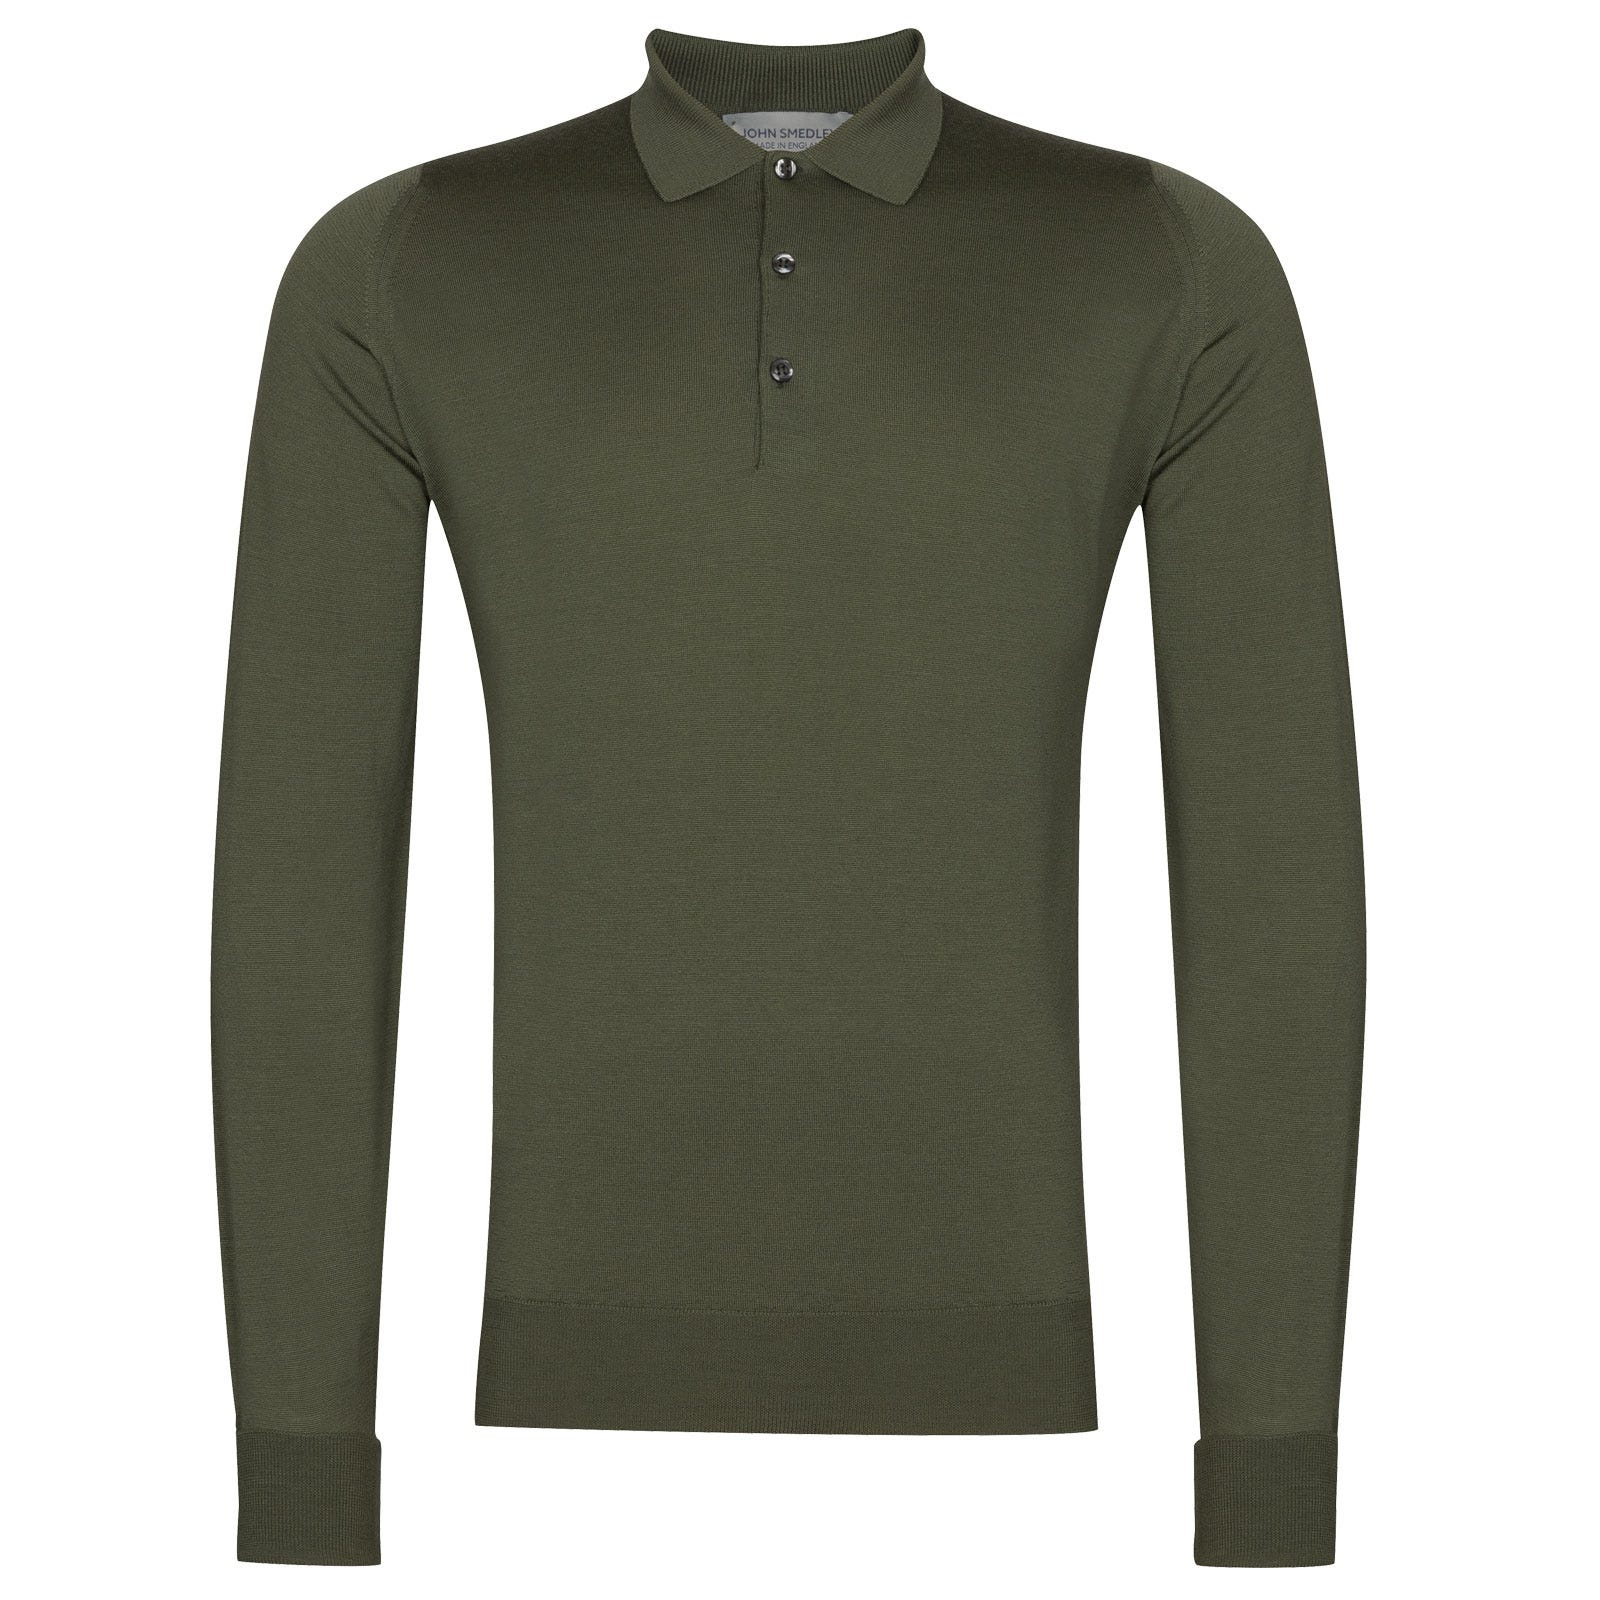 John Smedley Cotswold in Sepal Green Shirt-SML